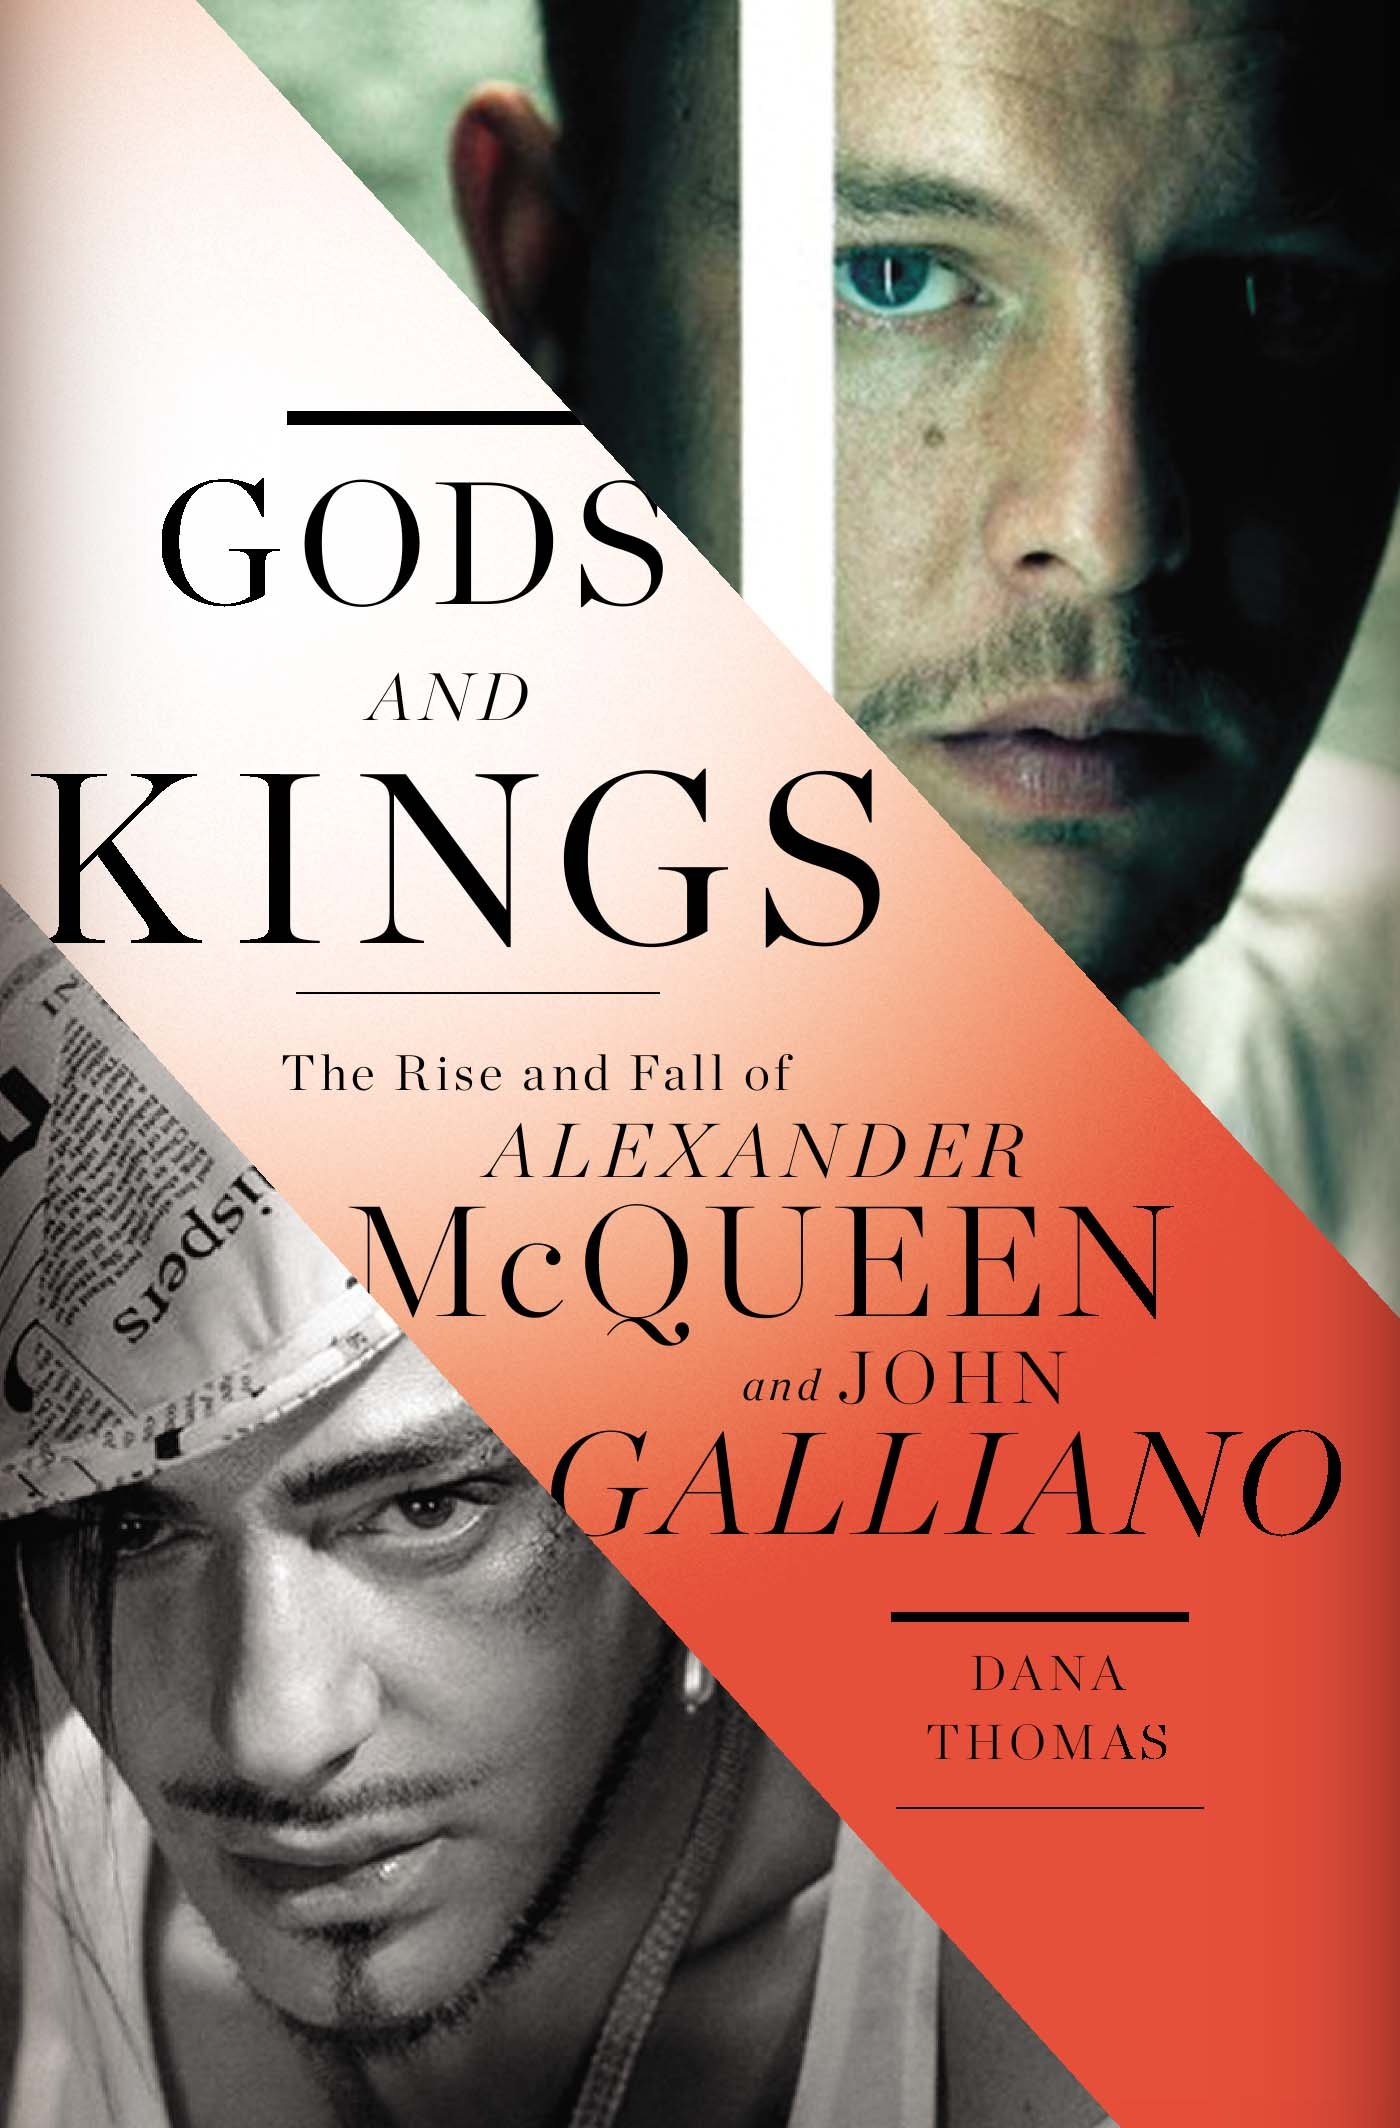 """Gods and Kings: The rise and fall of Alexander McQueen and John Galliano"", el nuevo libro estrella de la moda"